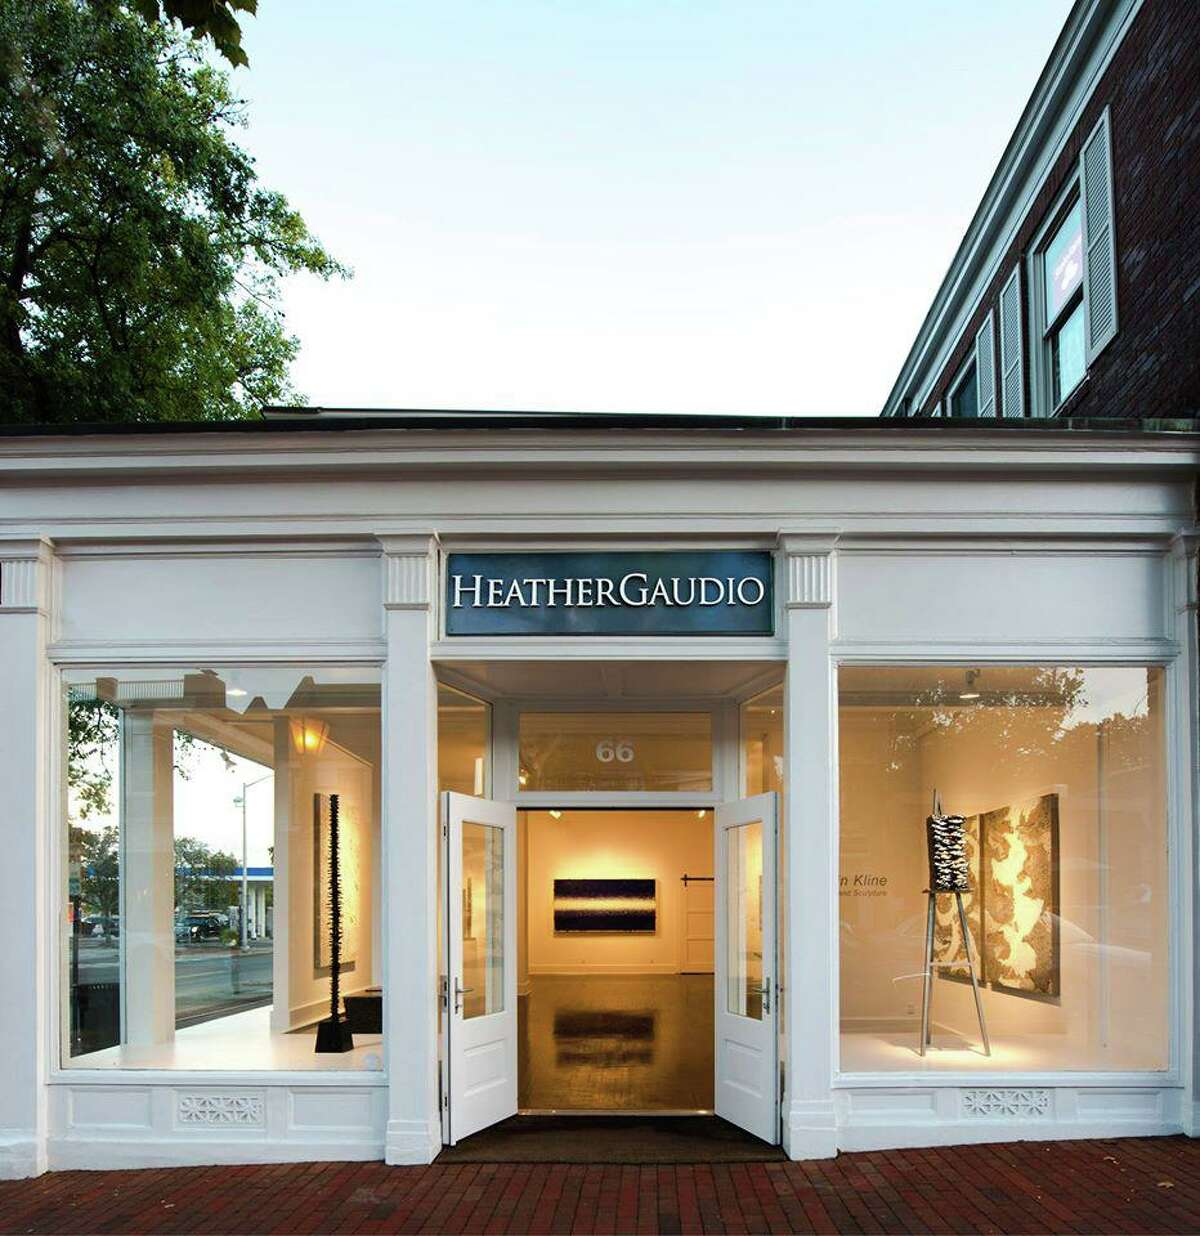 Heather Gaudio Fine Art, on Elm Street in New Canaan, has exhibits the should be viewed in person to be fully appreciated.